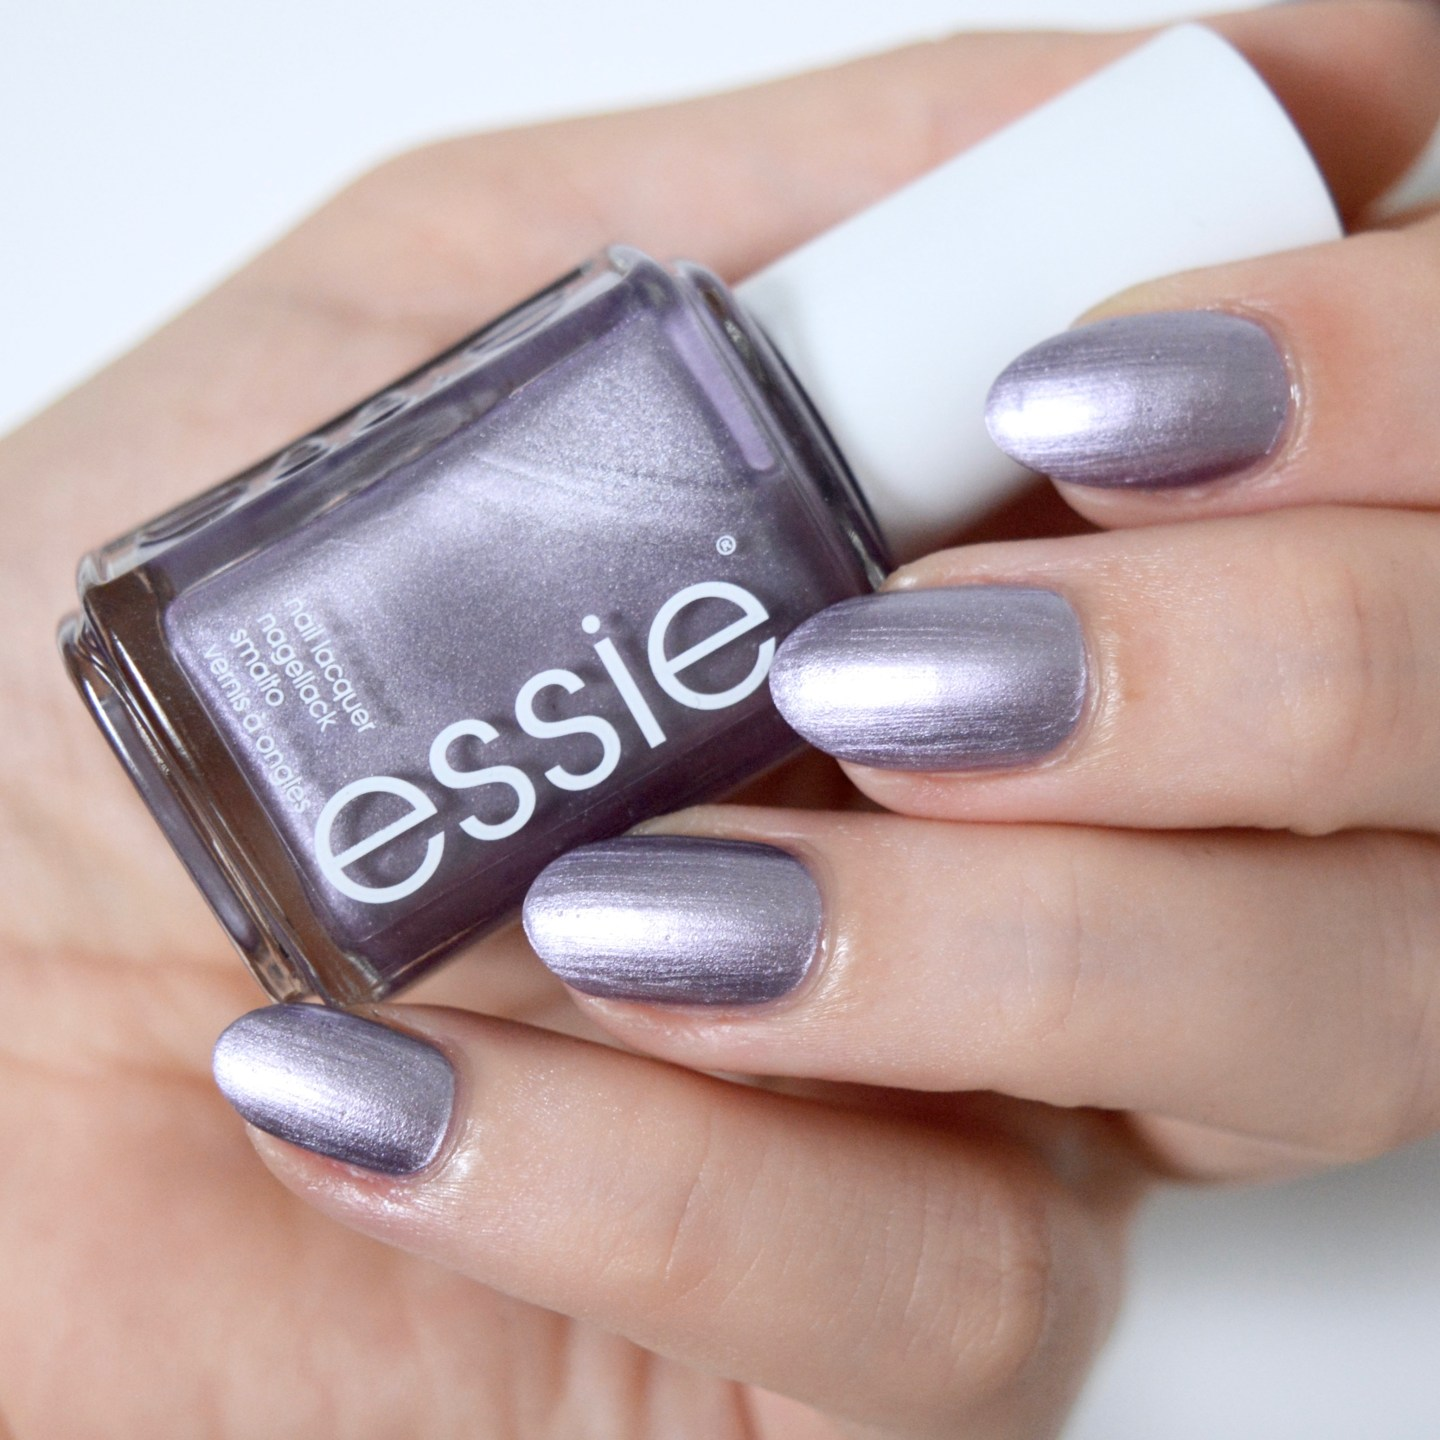 Essie Fall 2017 collection - Girly Grunge